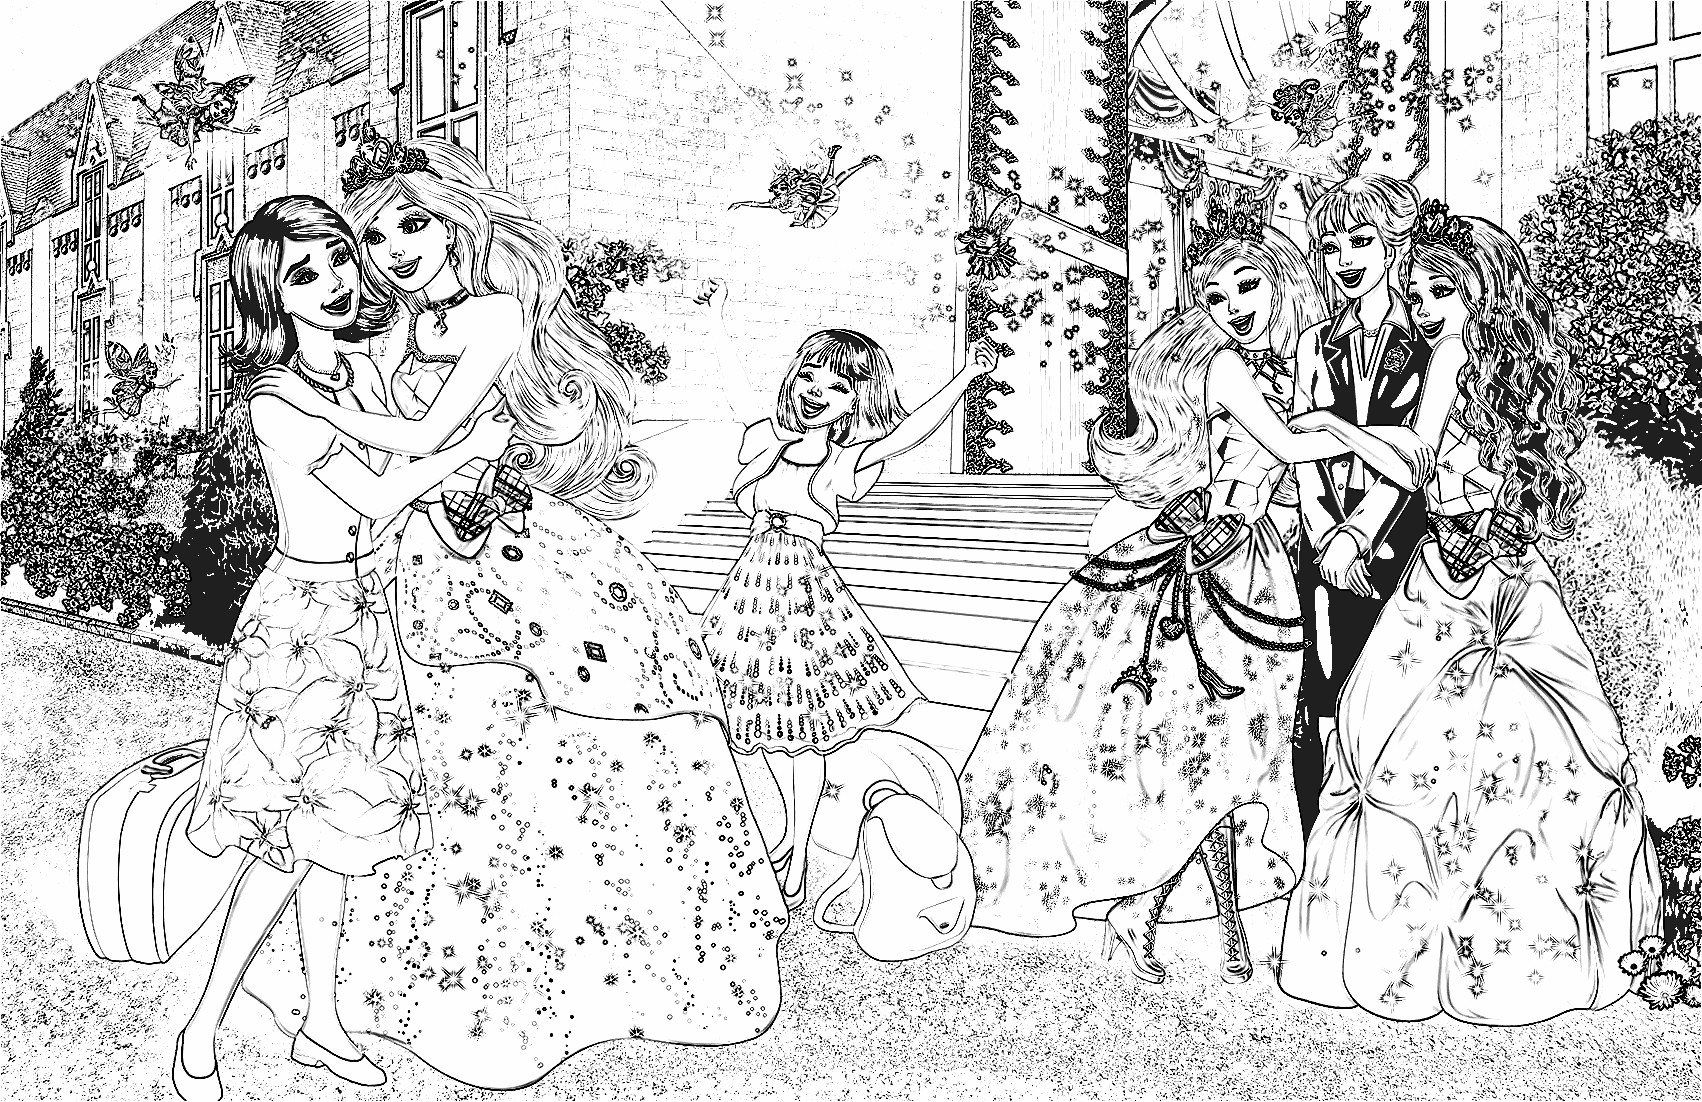 Free coloring pages for 4 year olds - Coloring Pages Princess Games